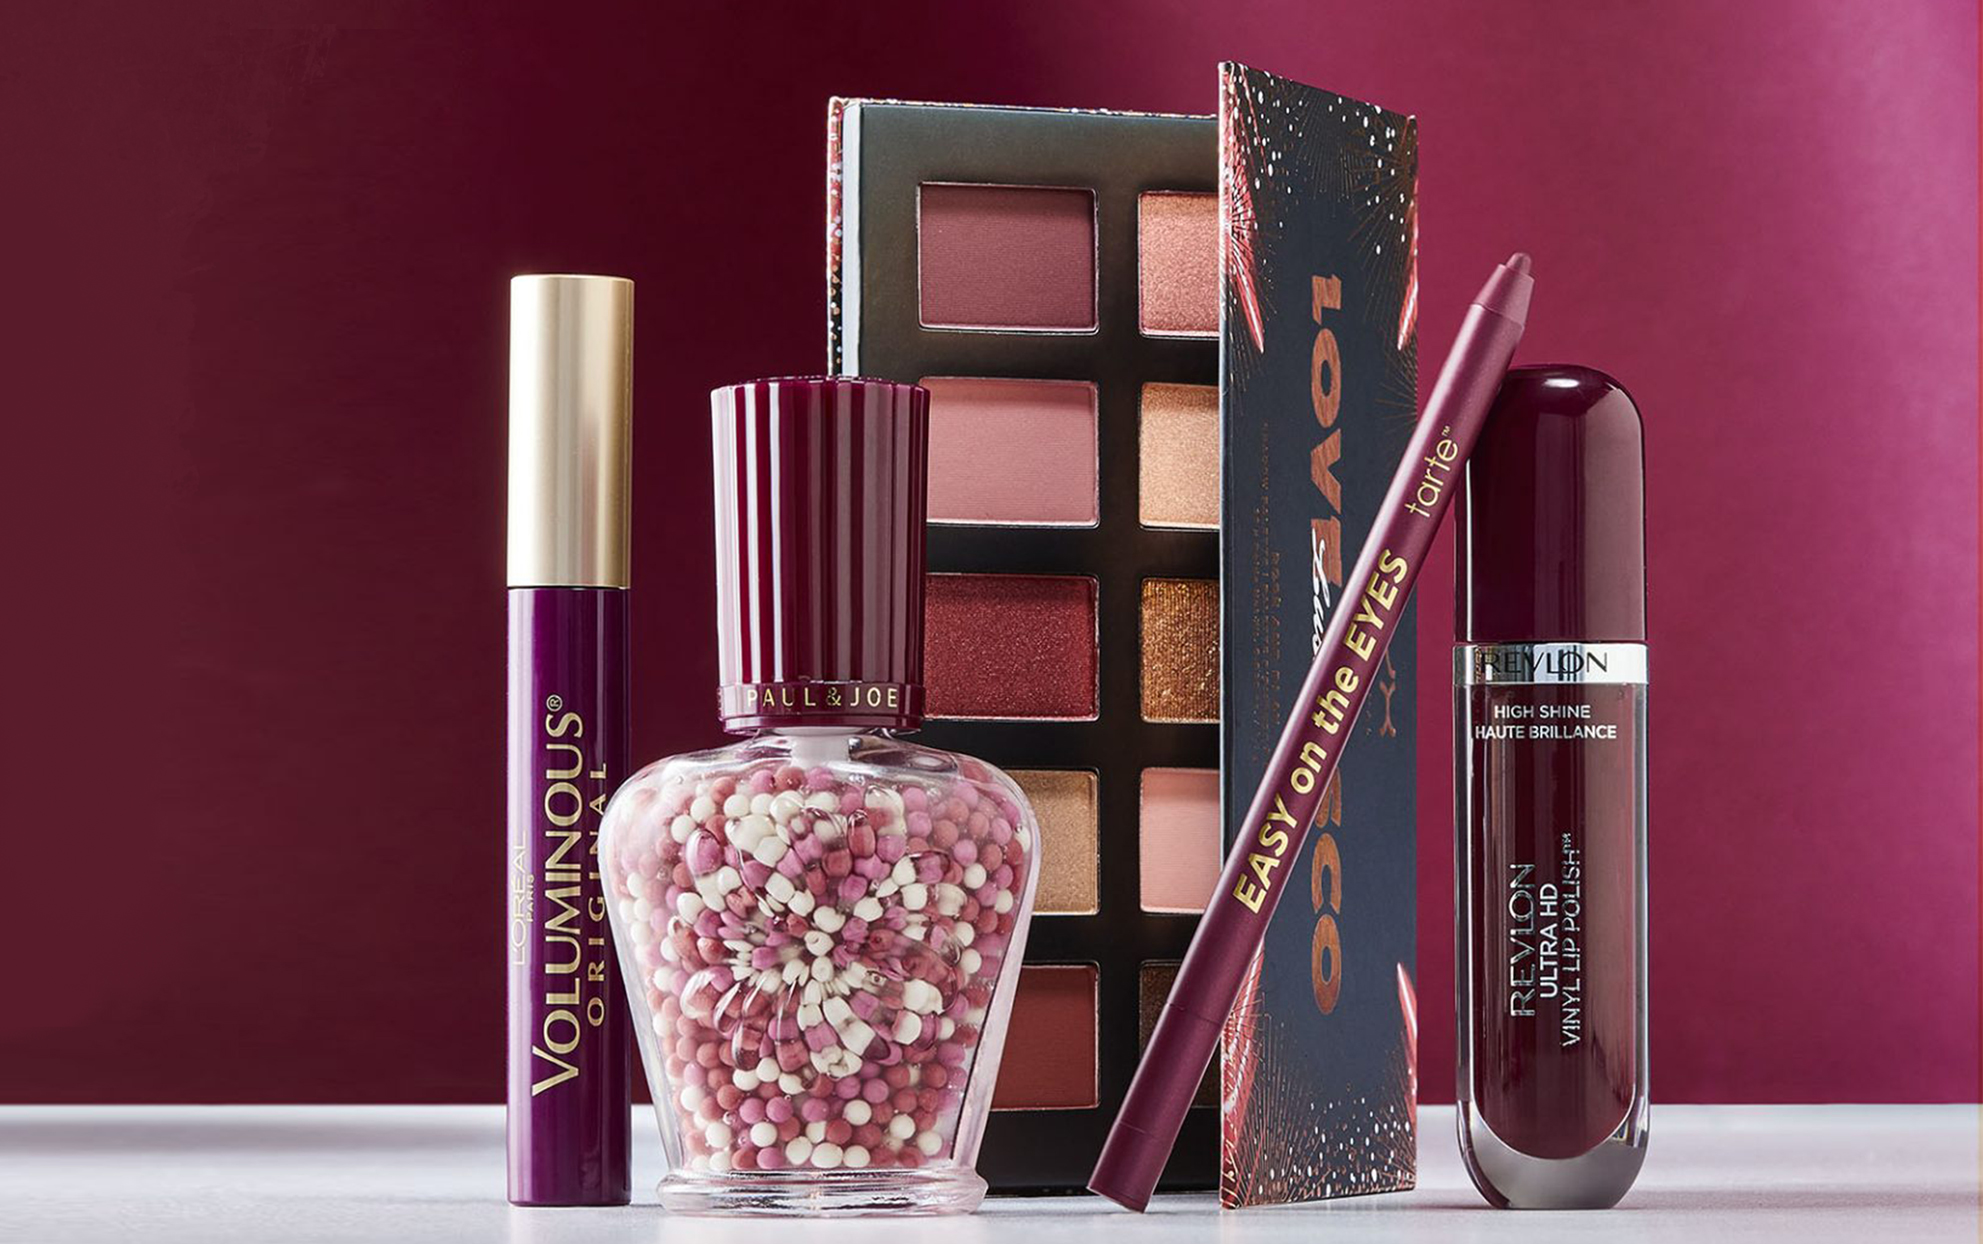 Several burgundy beauty products with a burgundy background on a white surface